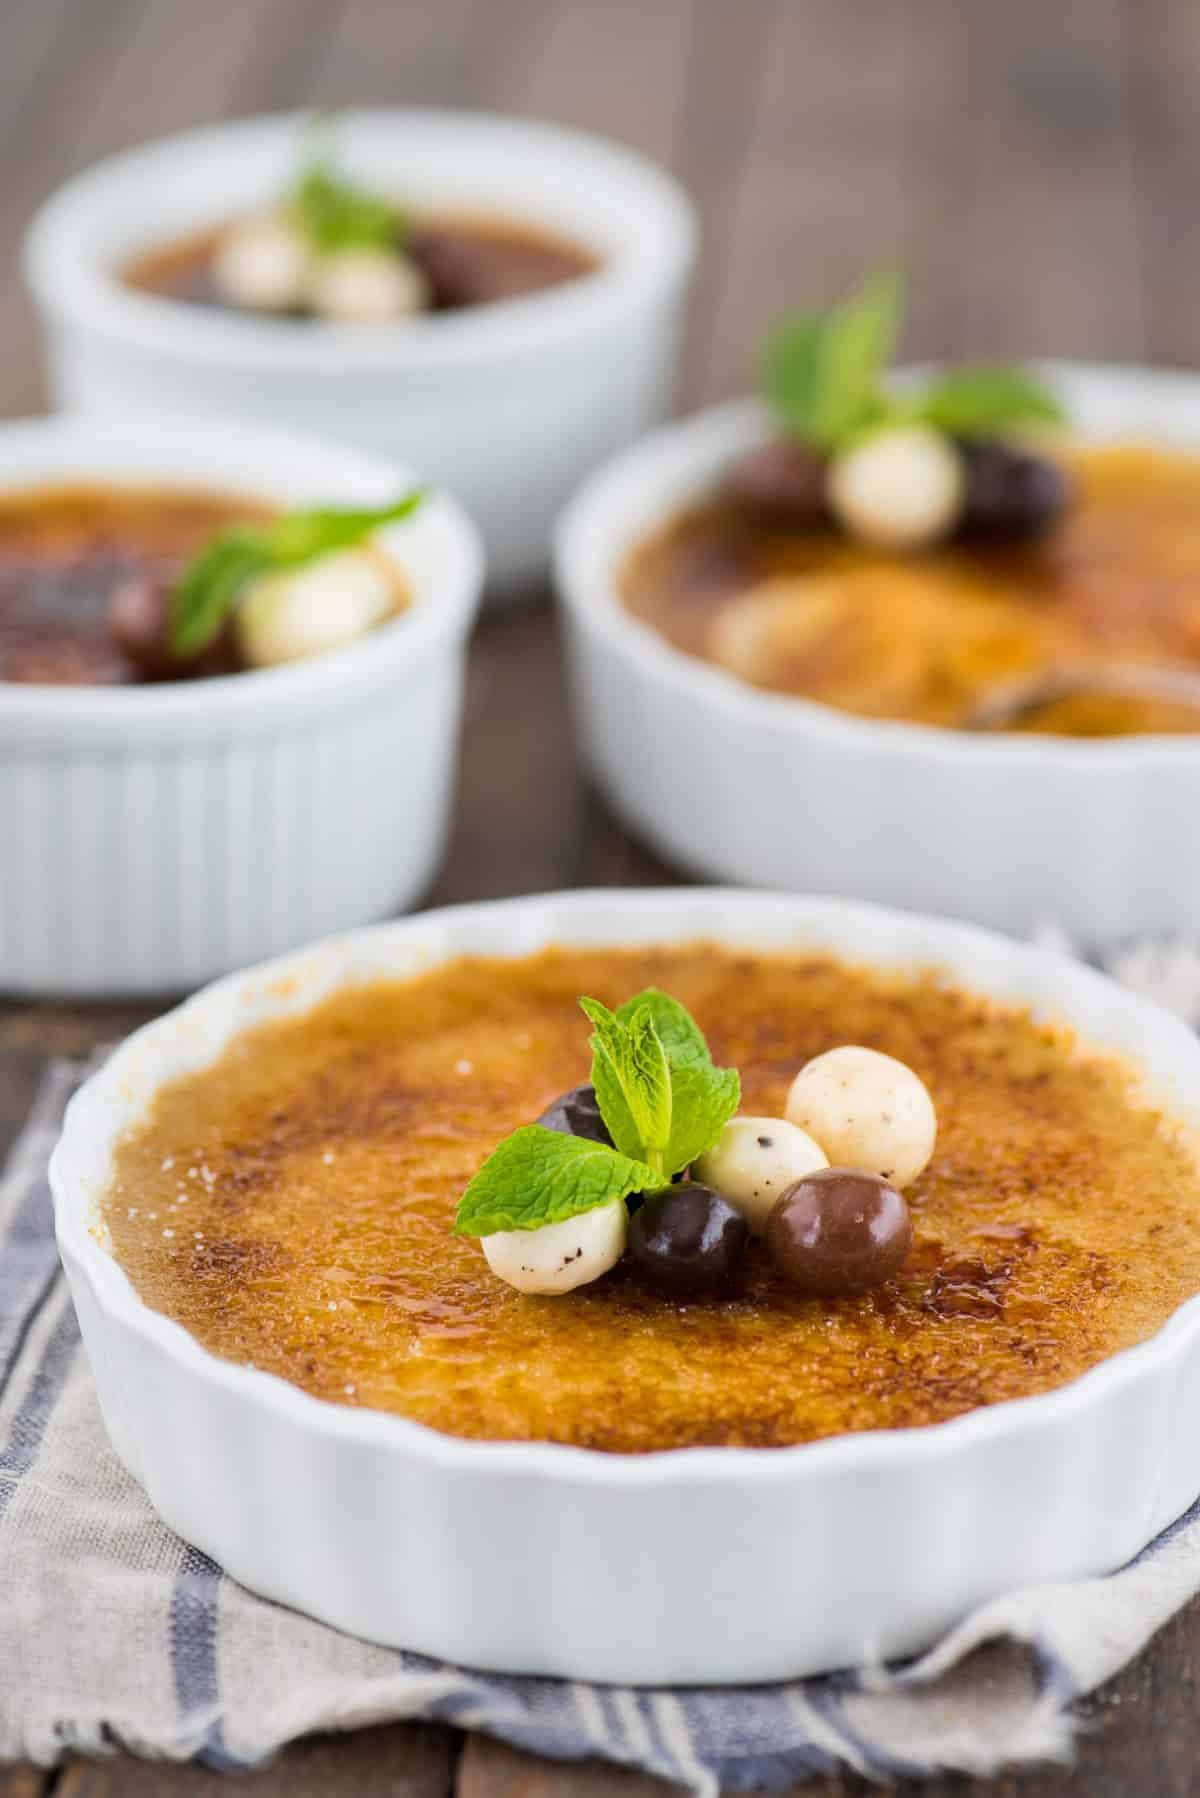 espresso creme brûlée in white round ramekin with chocolate covered coffee beans and mint leaf on top of creme brûlée